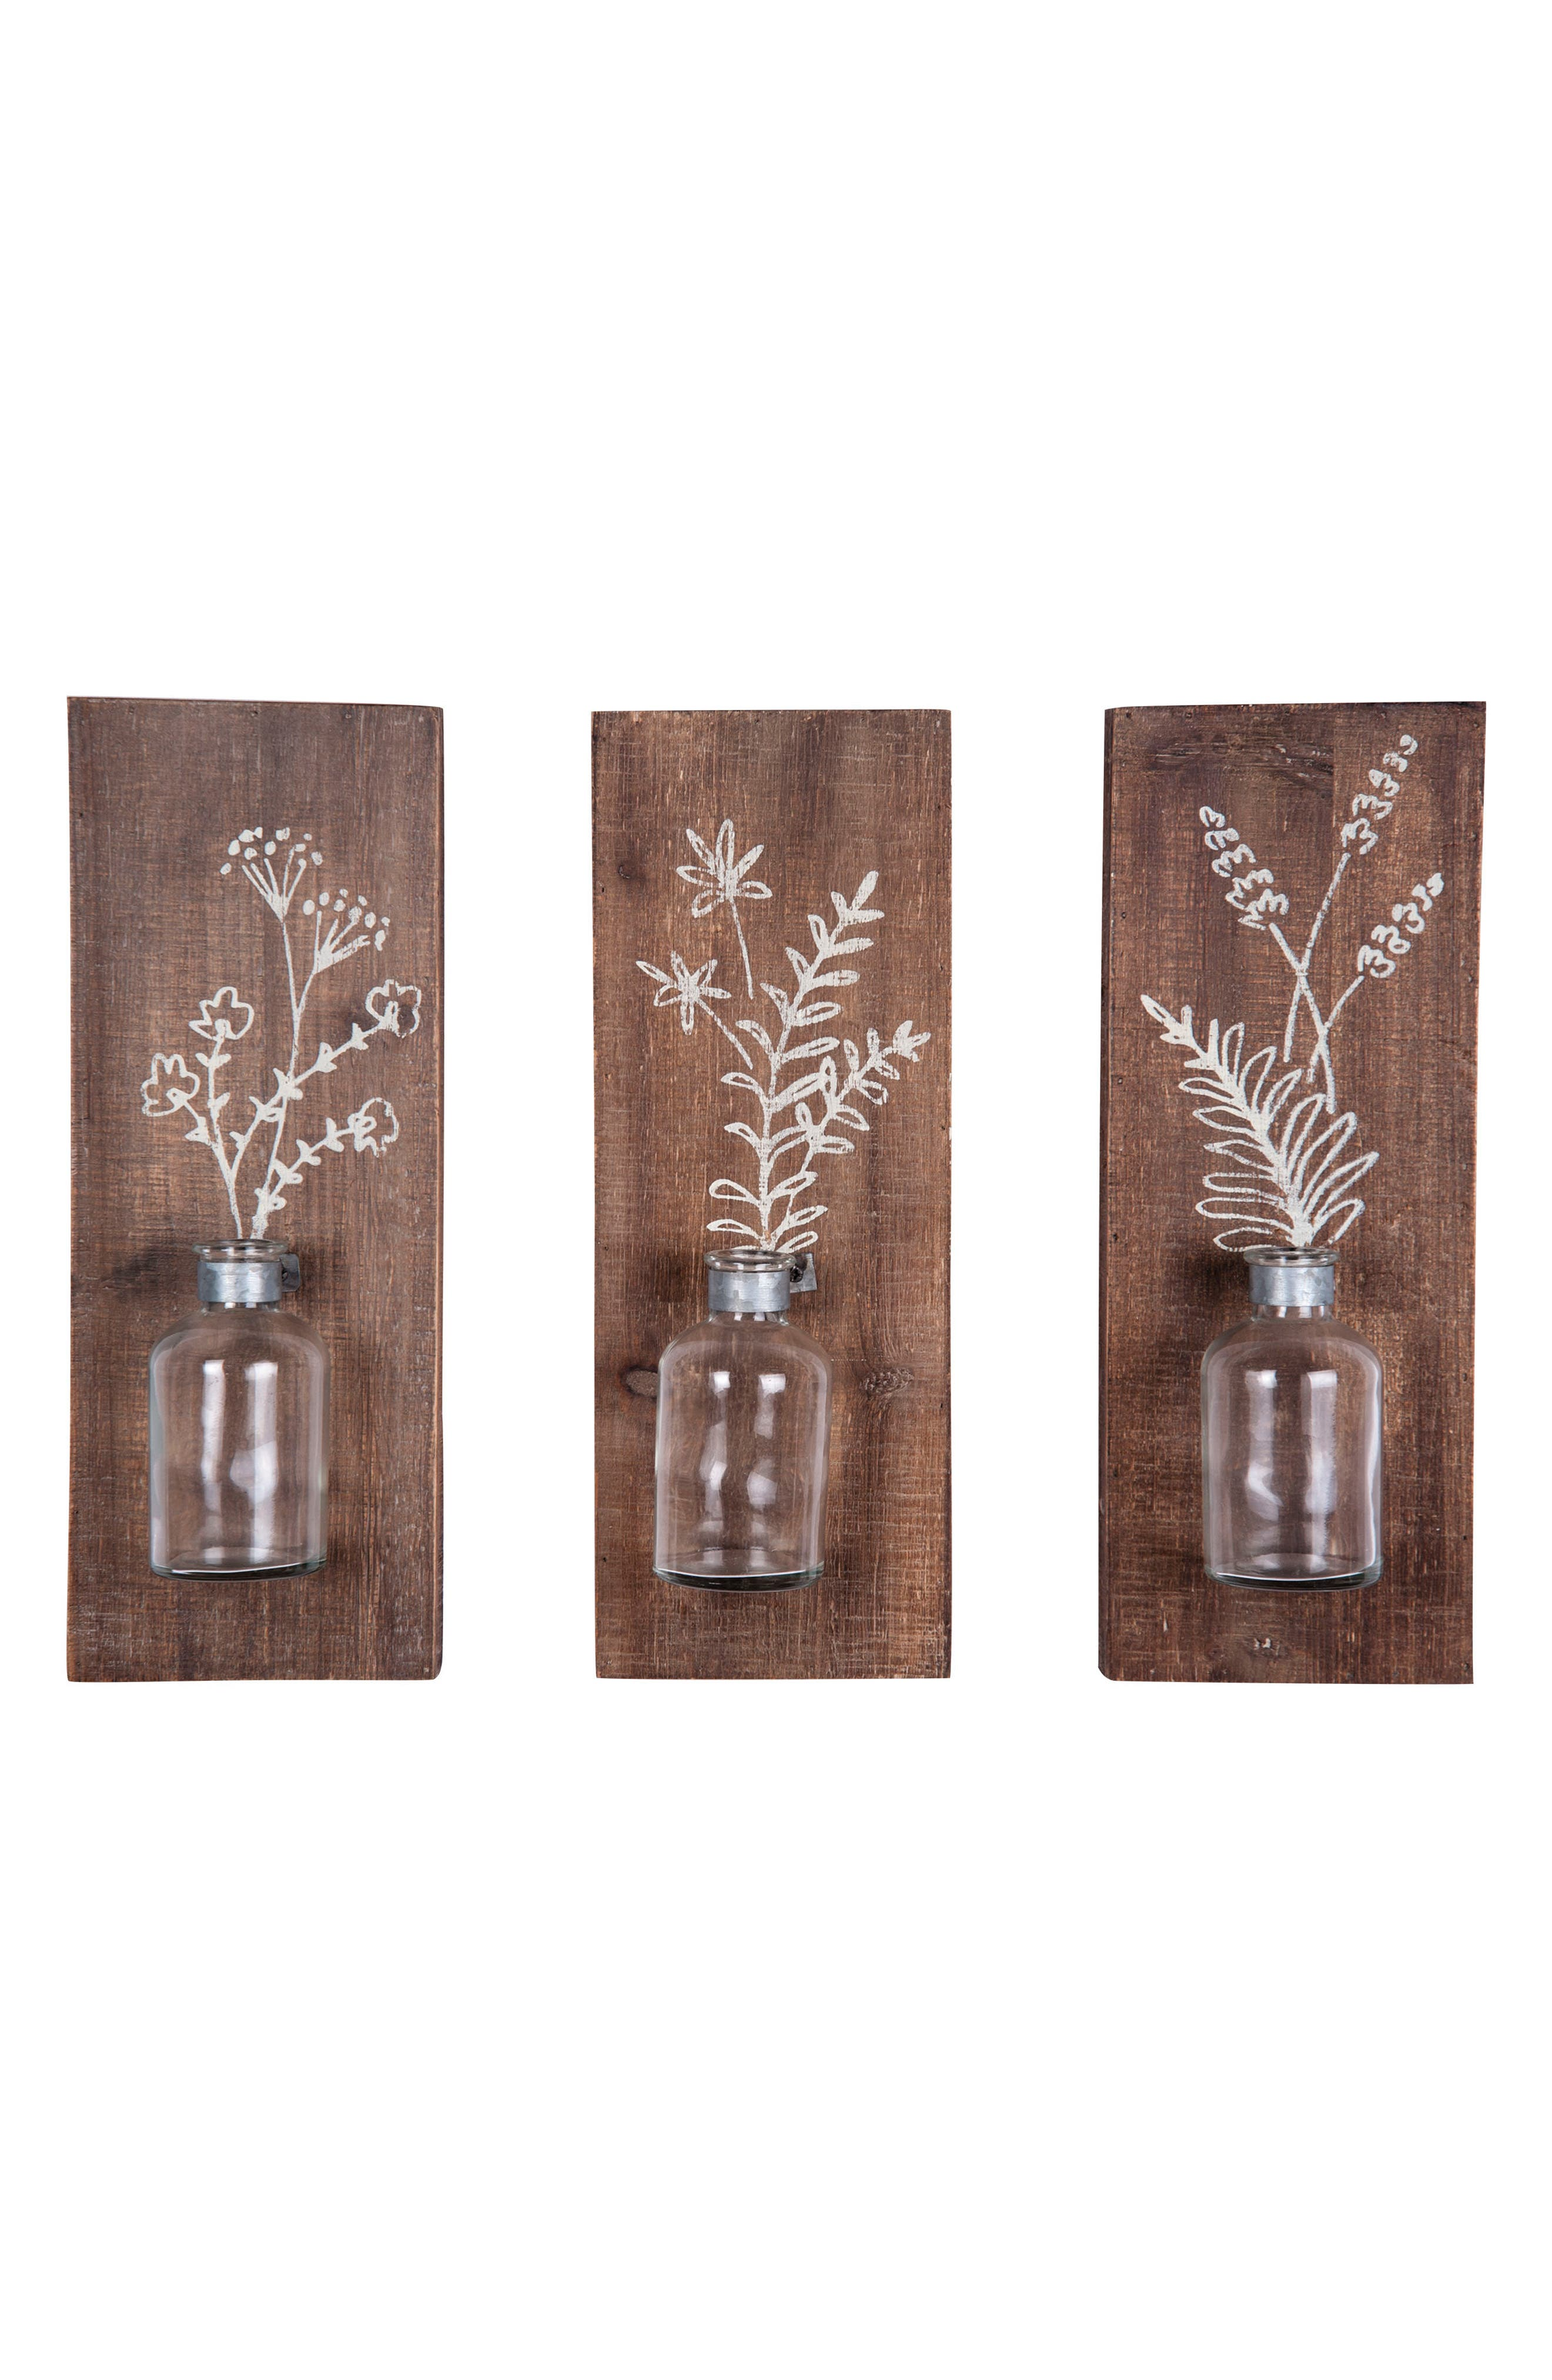 Fern Set of 3 Wall Vases,                         Main,                         color, Wood/ Glass/ Metal